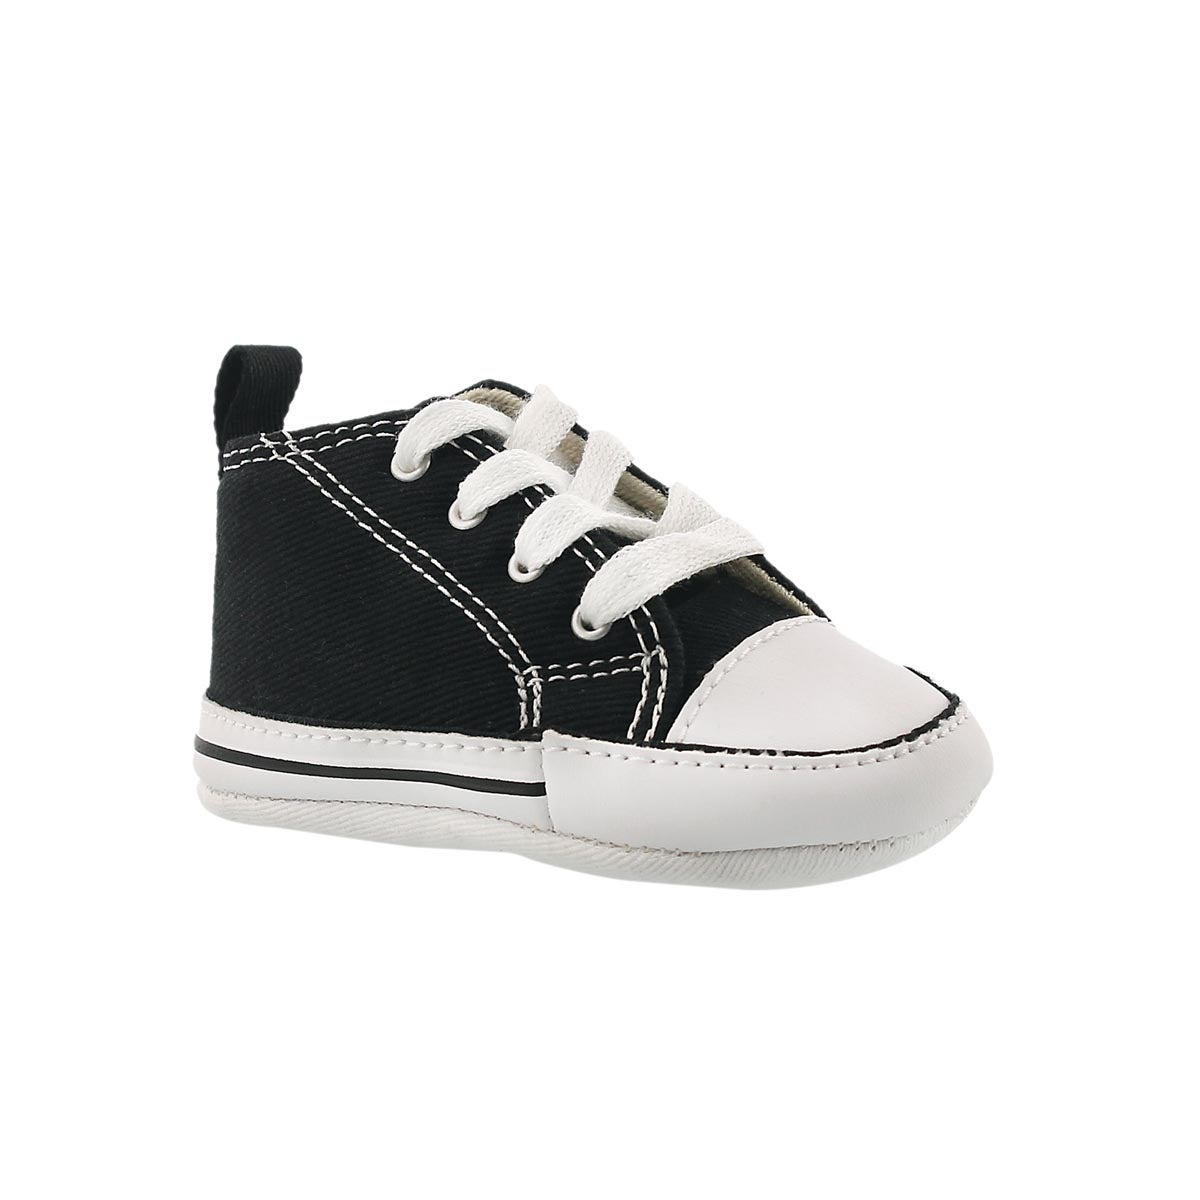 Infants' ALL STAR CRIB black canvas sneakers